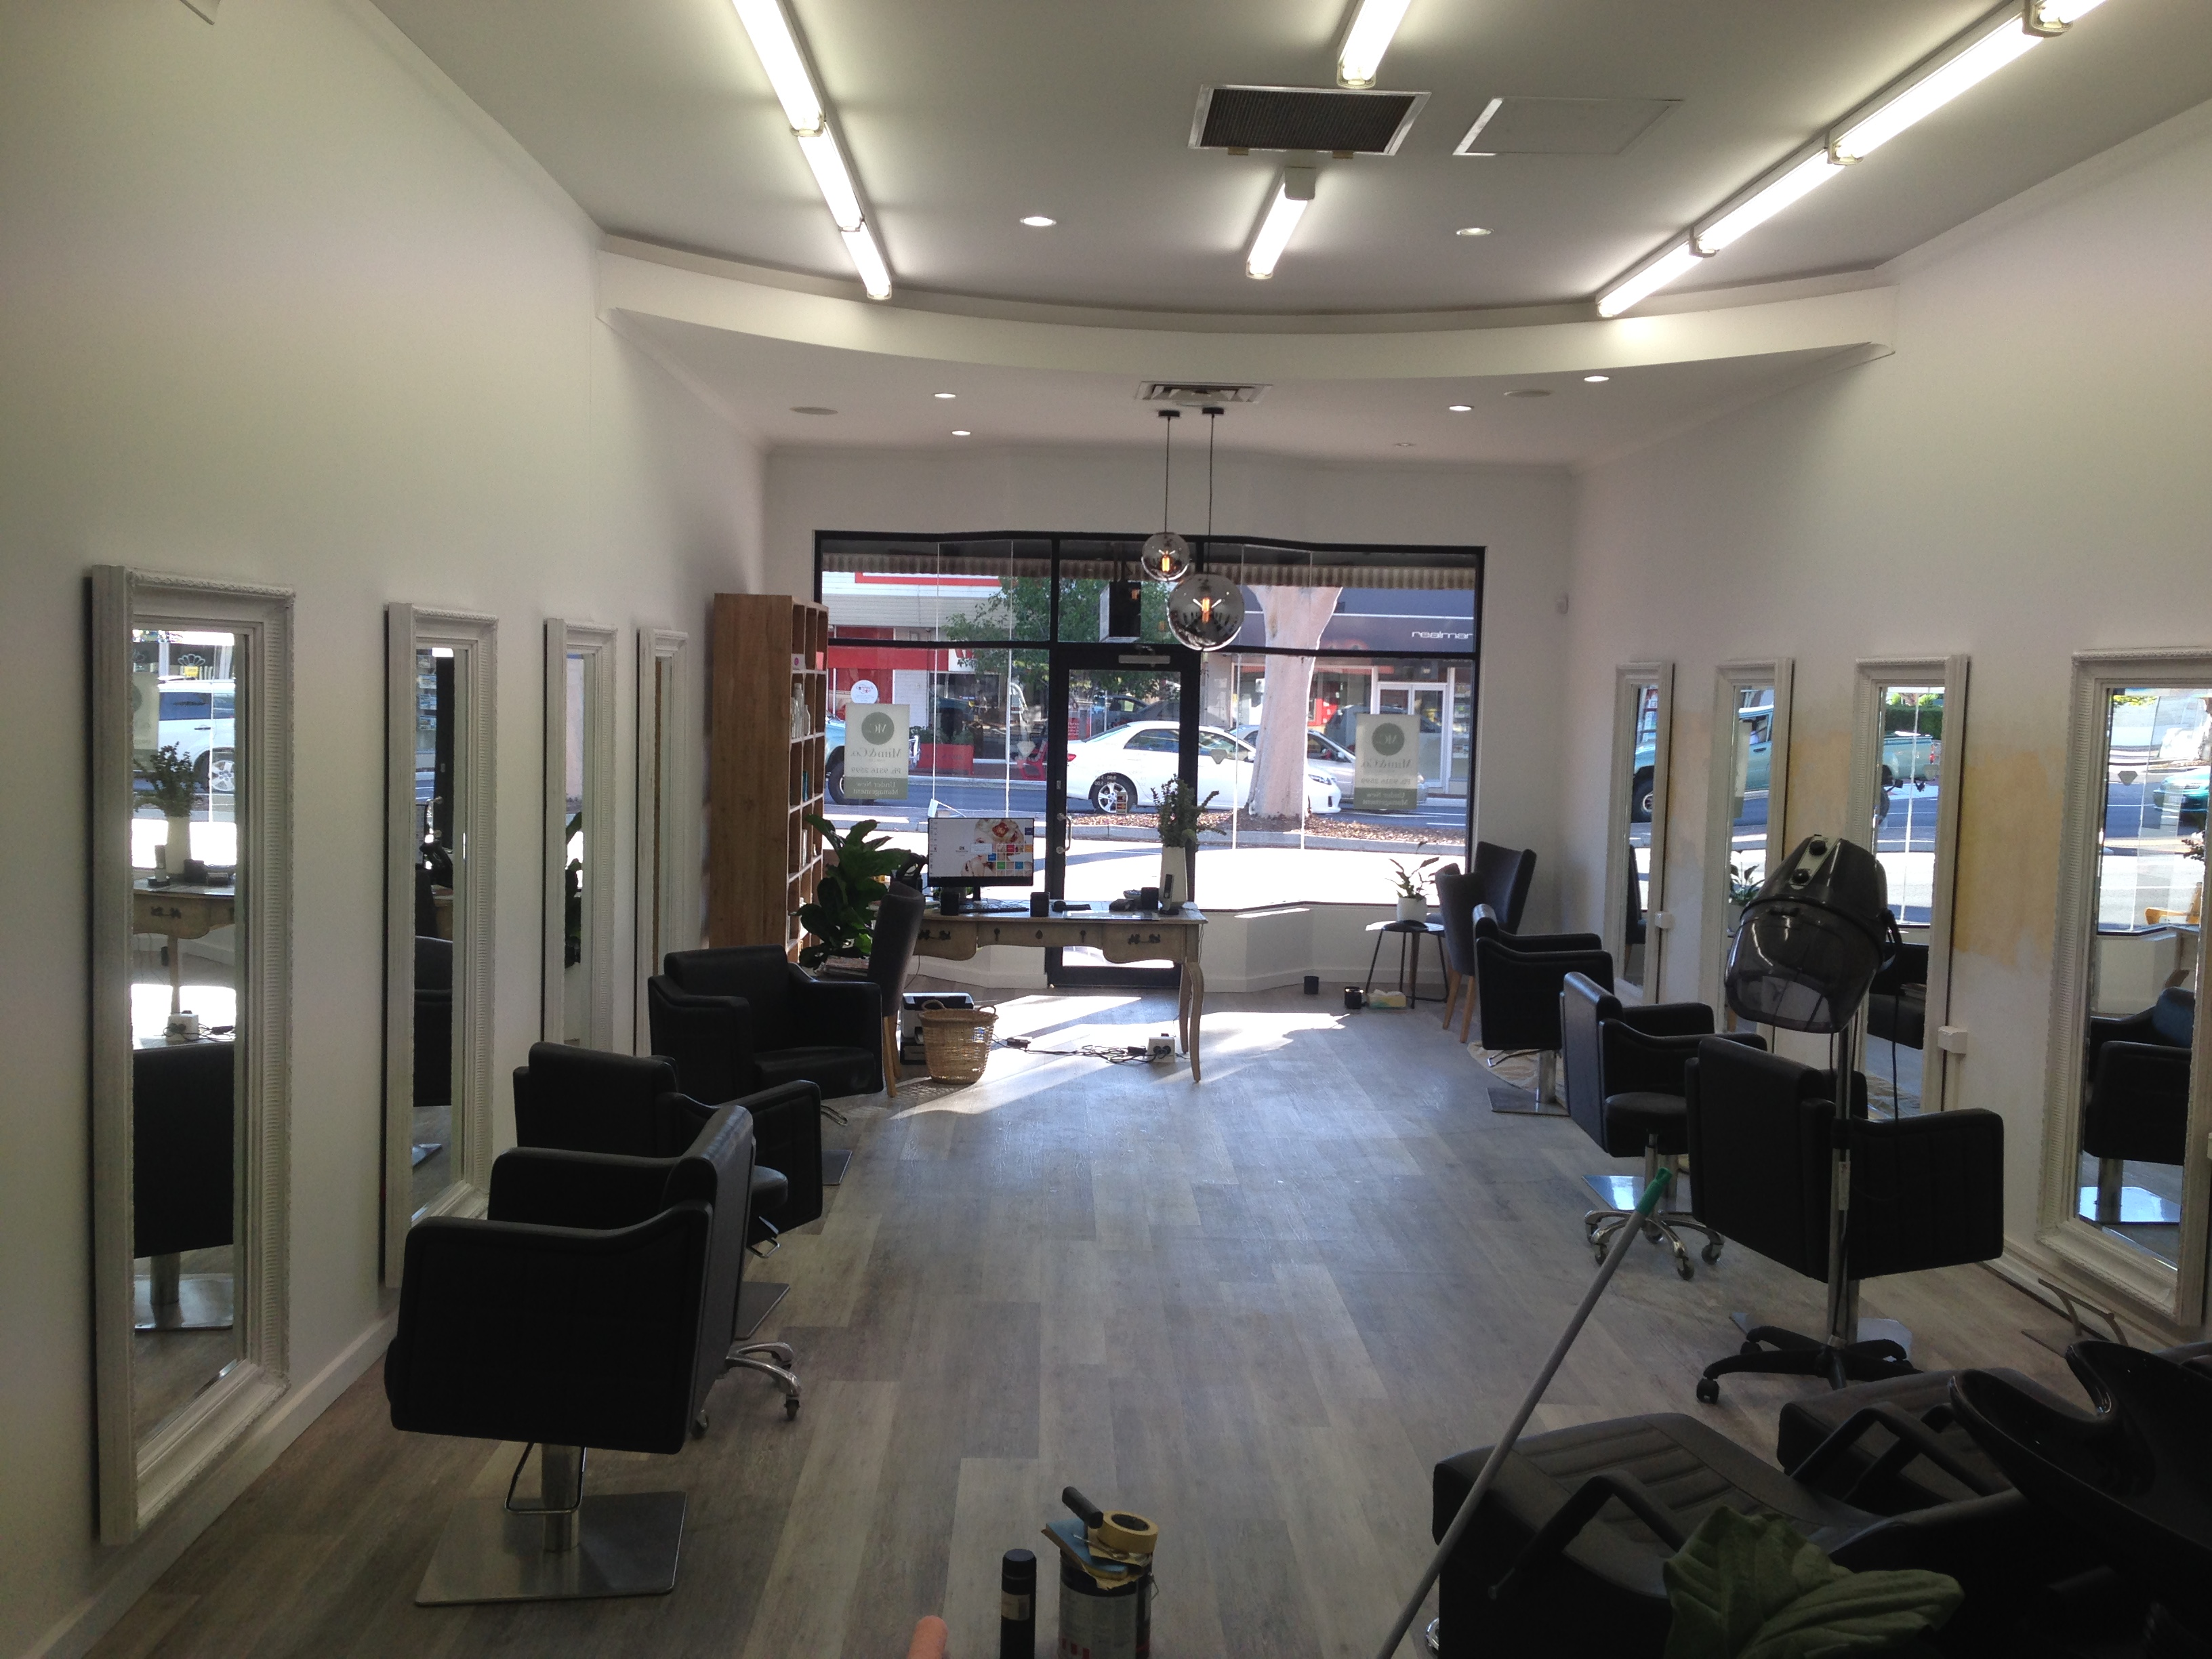 Hairdressing salon renovation